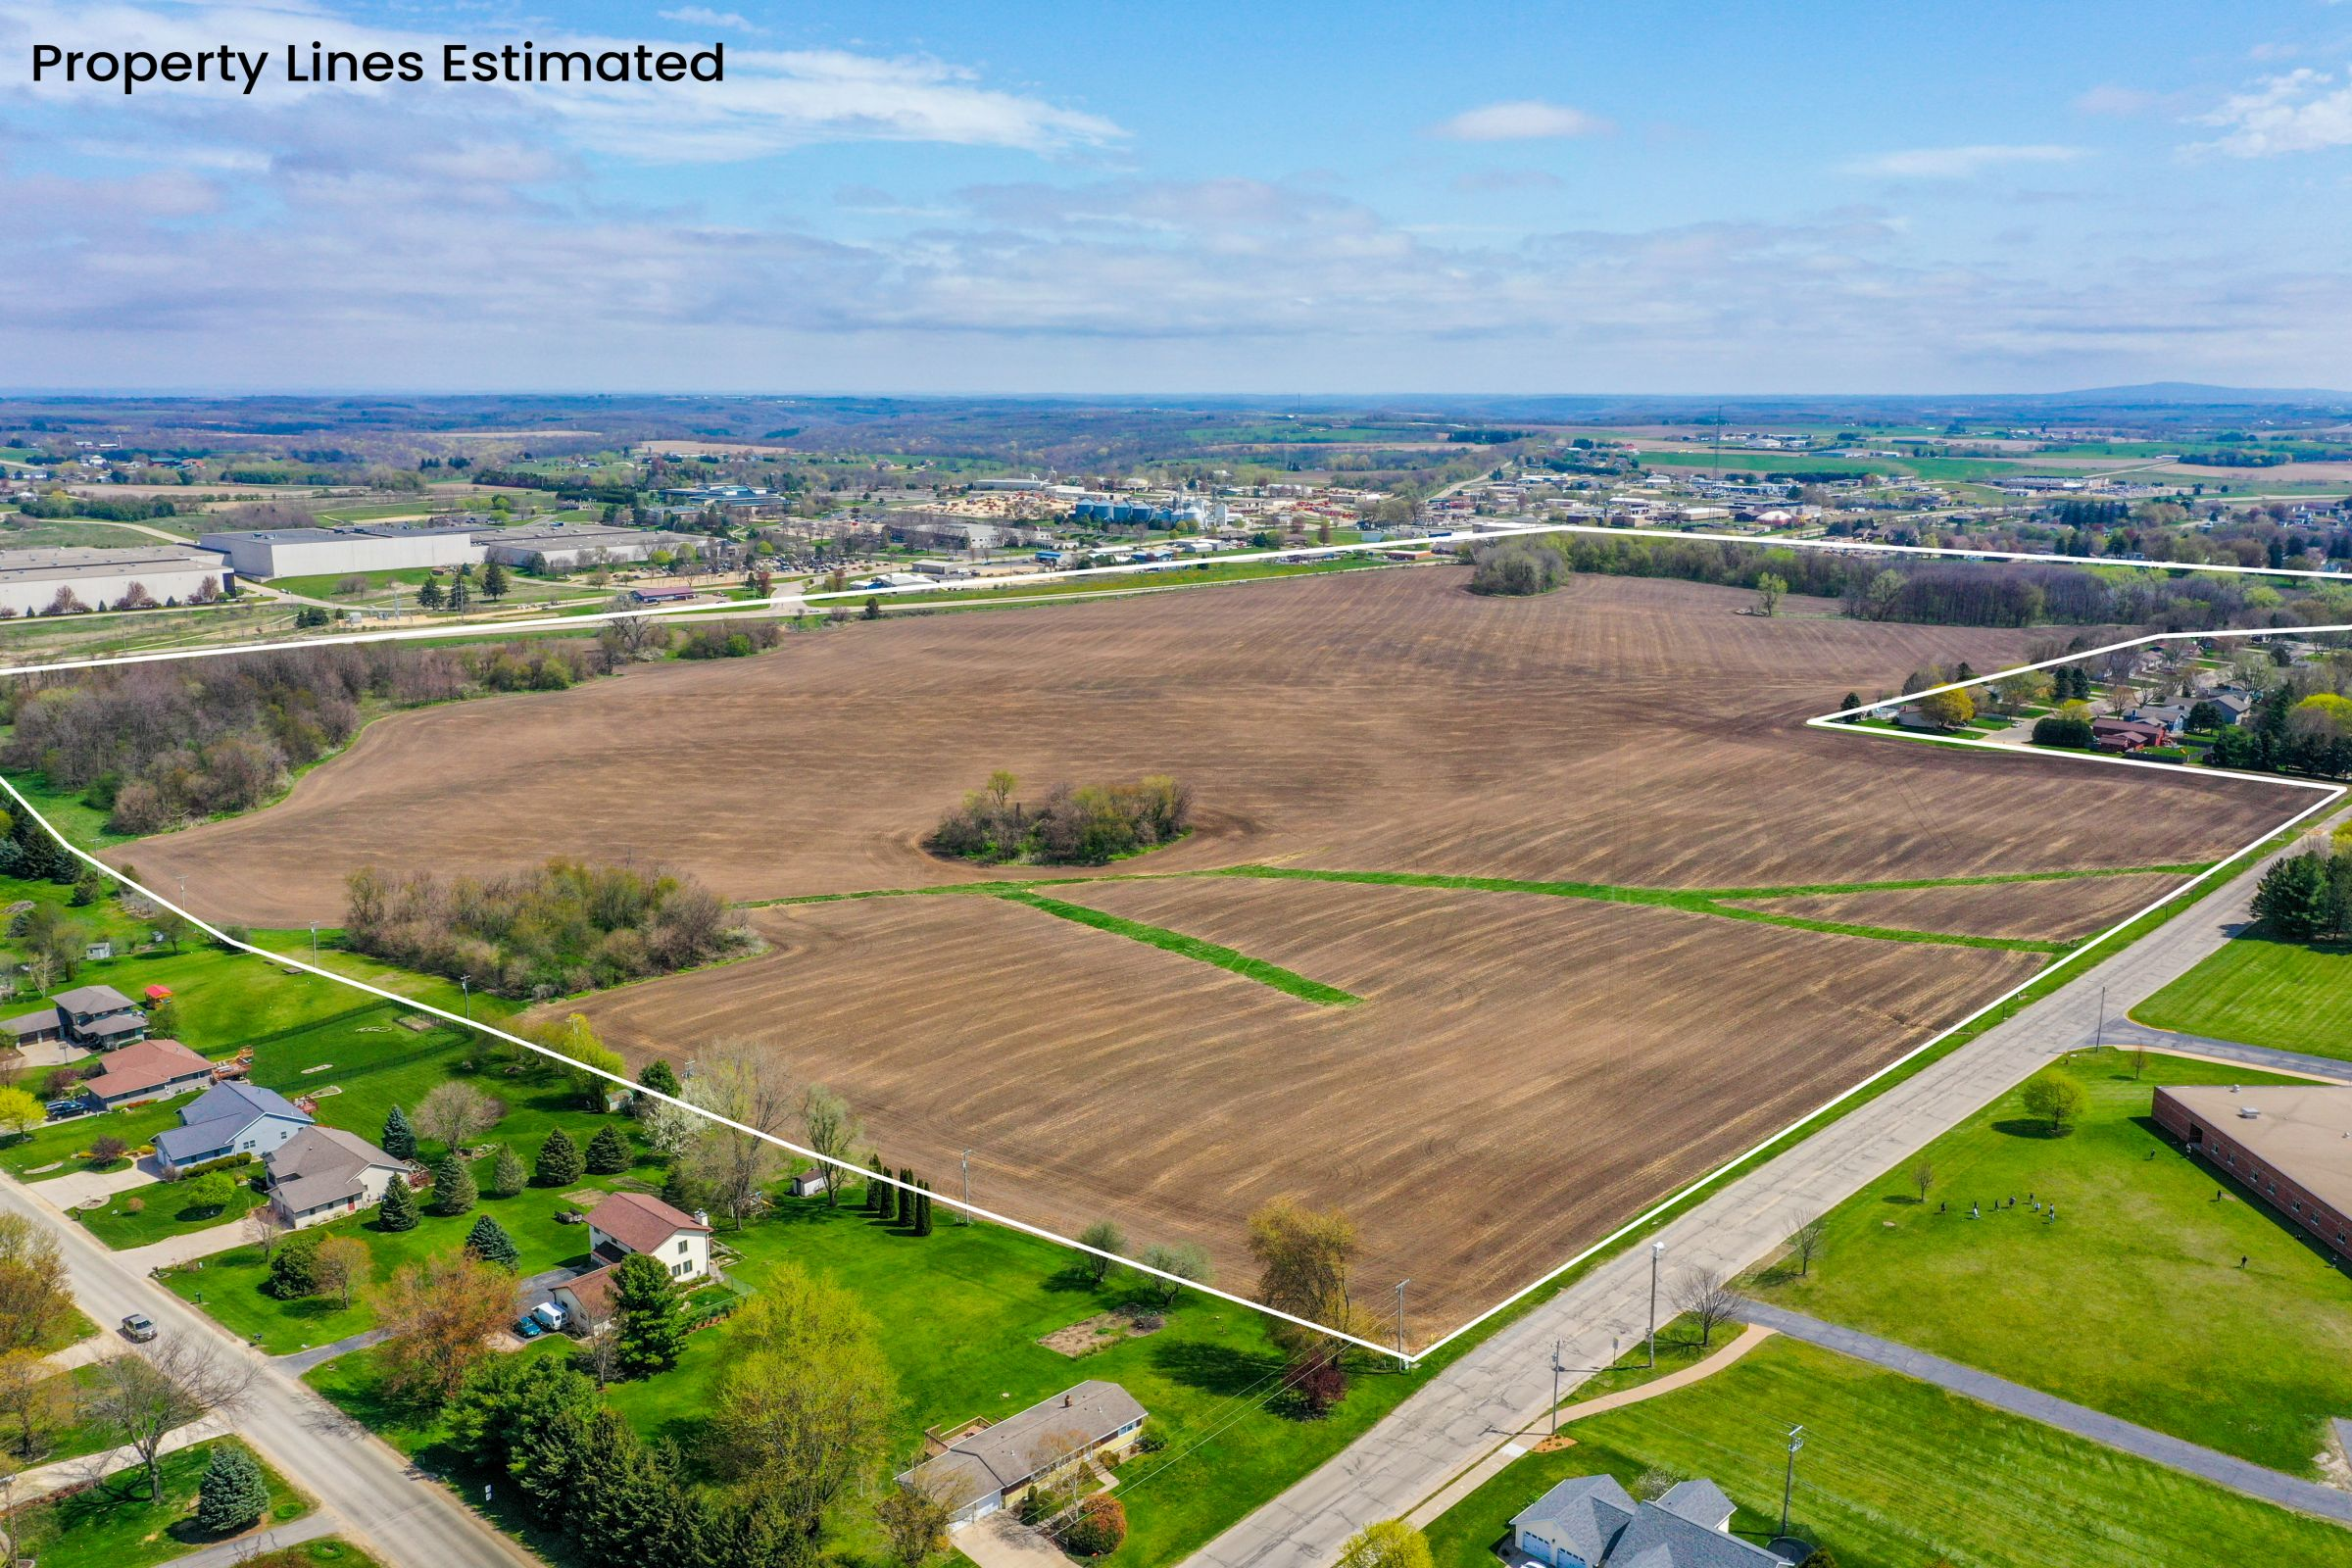 development-land-commercial-iowa-county-wisconsin-152-acres-listing-number-15474-0-2021-05-18-161412.jpg